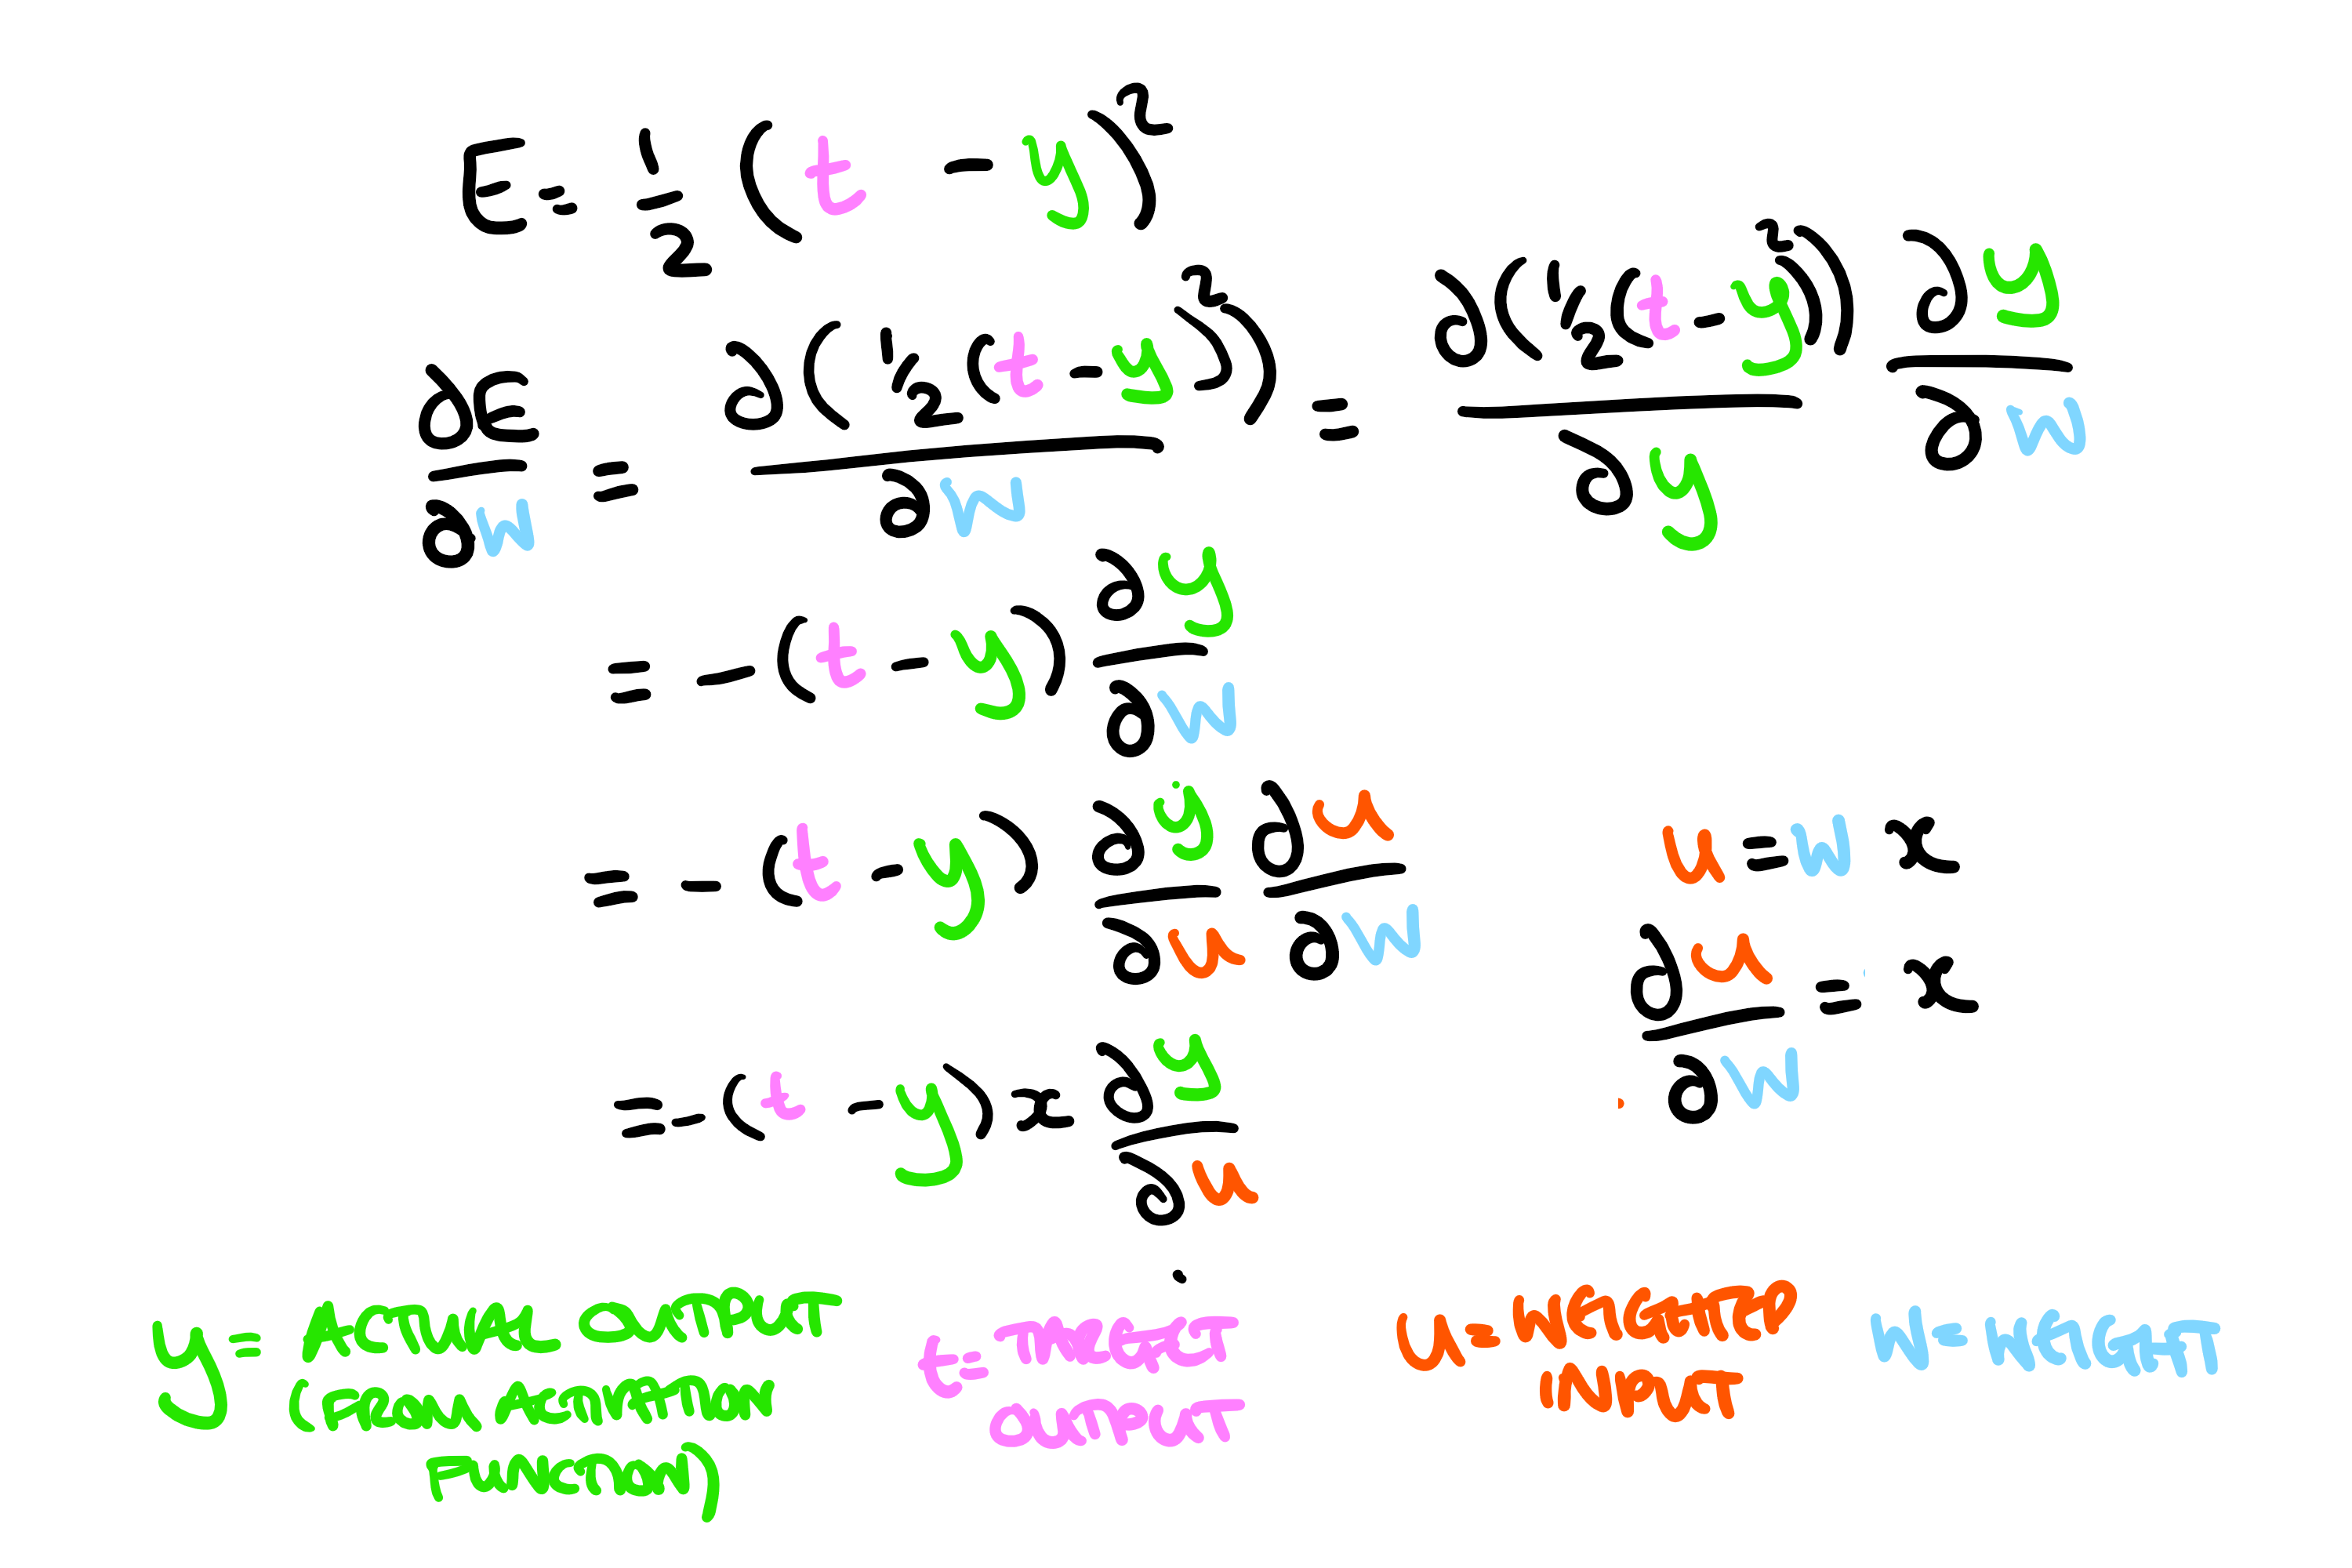 Equations for calculating the mean squared error.